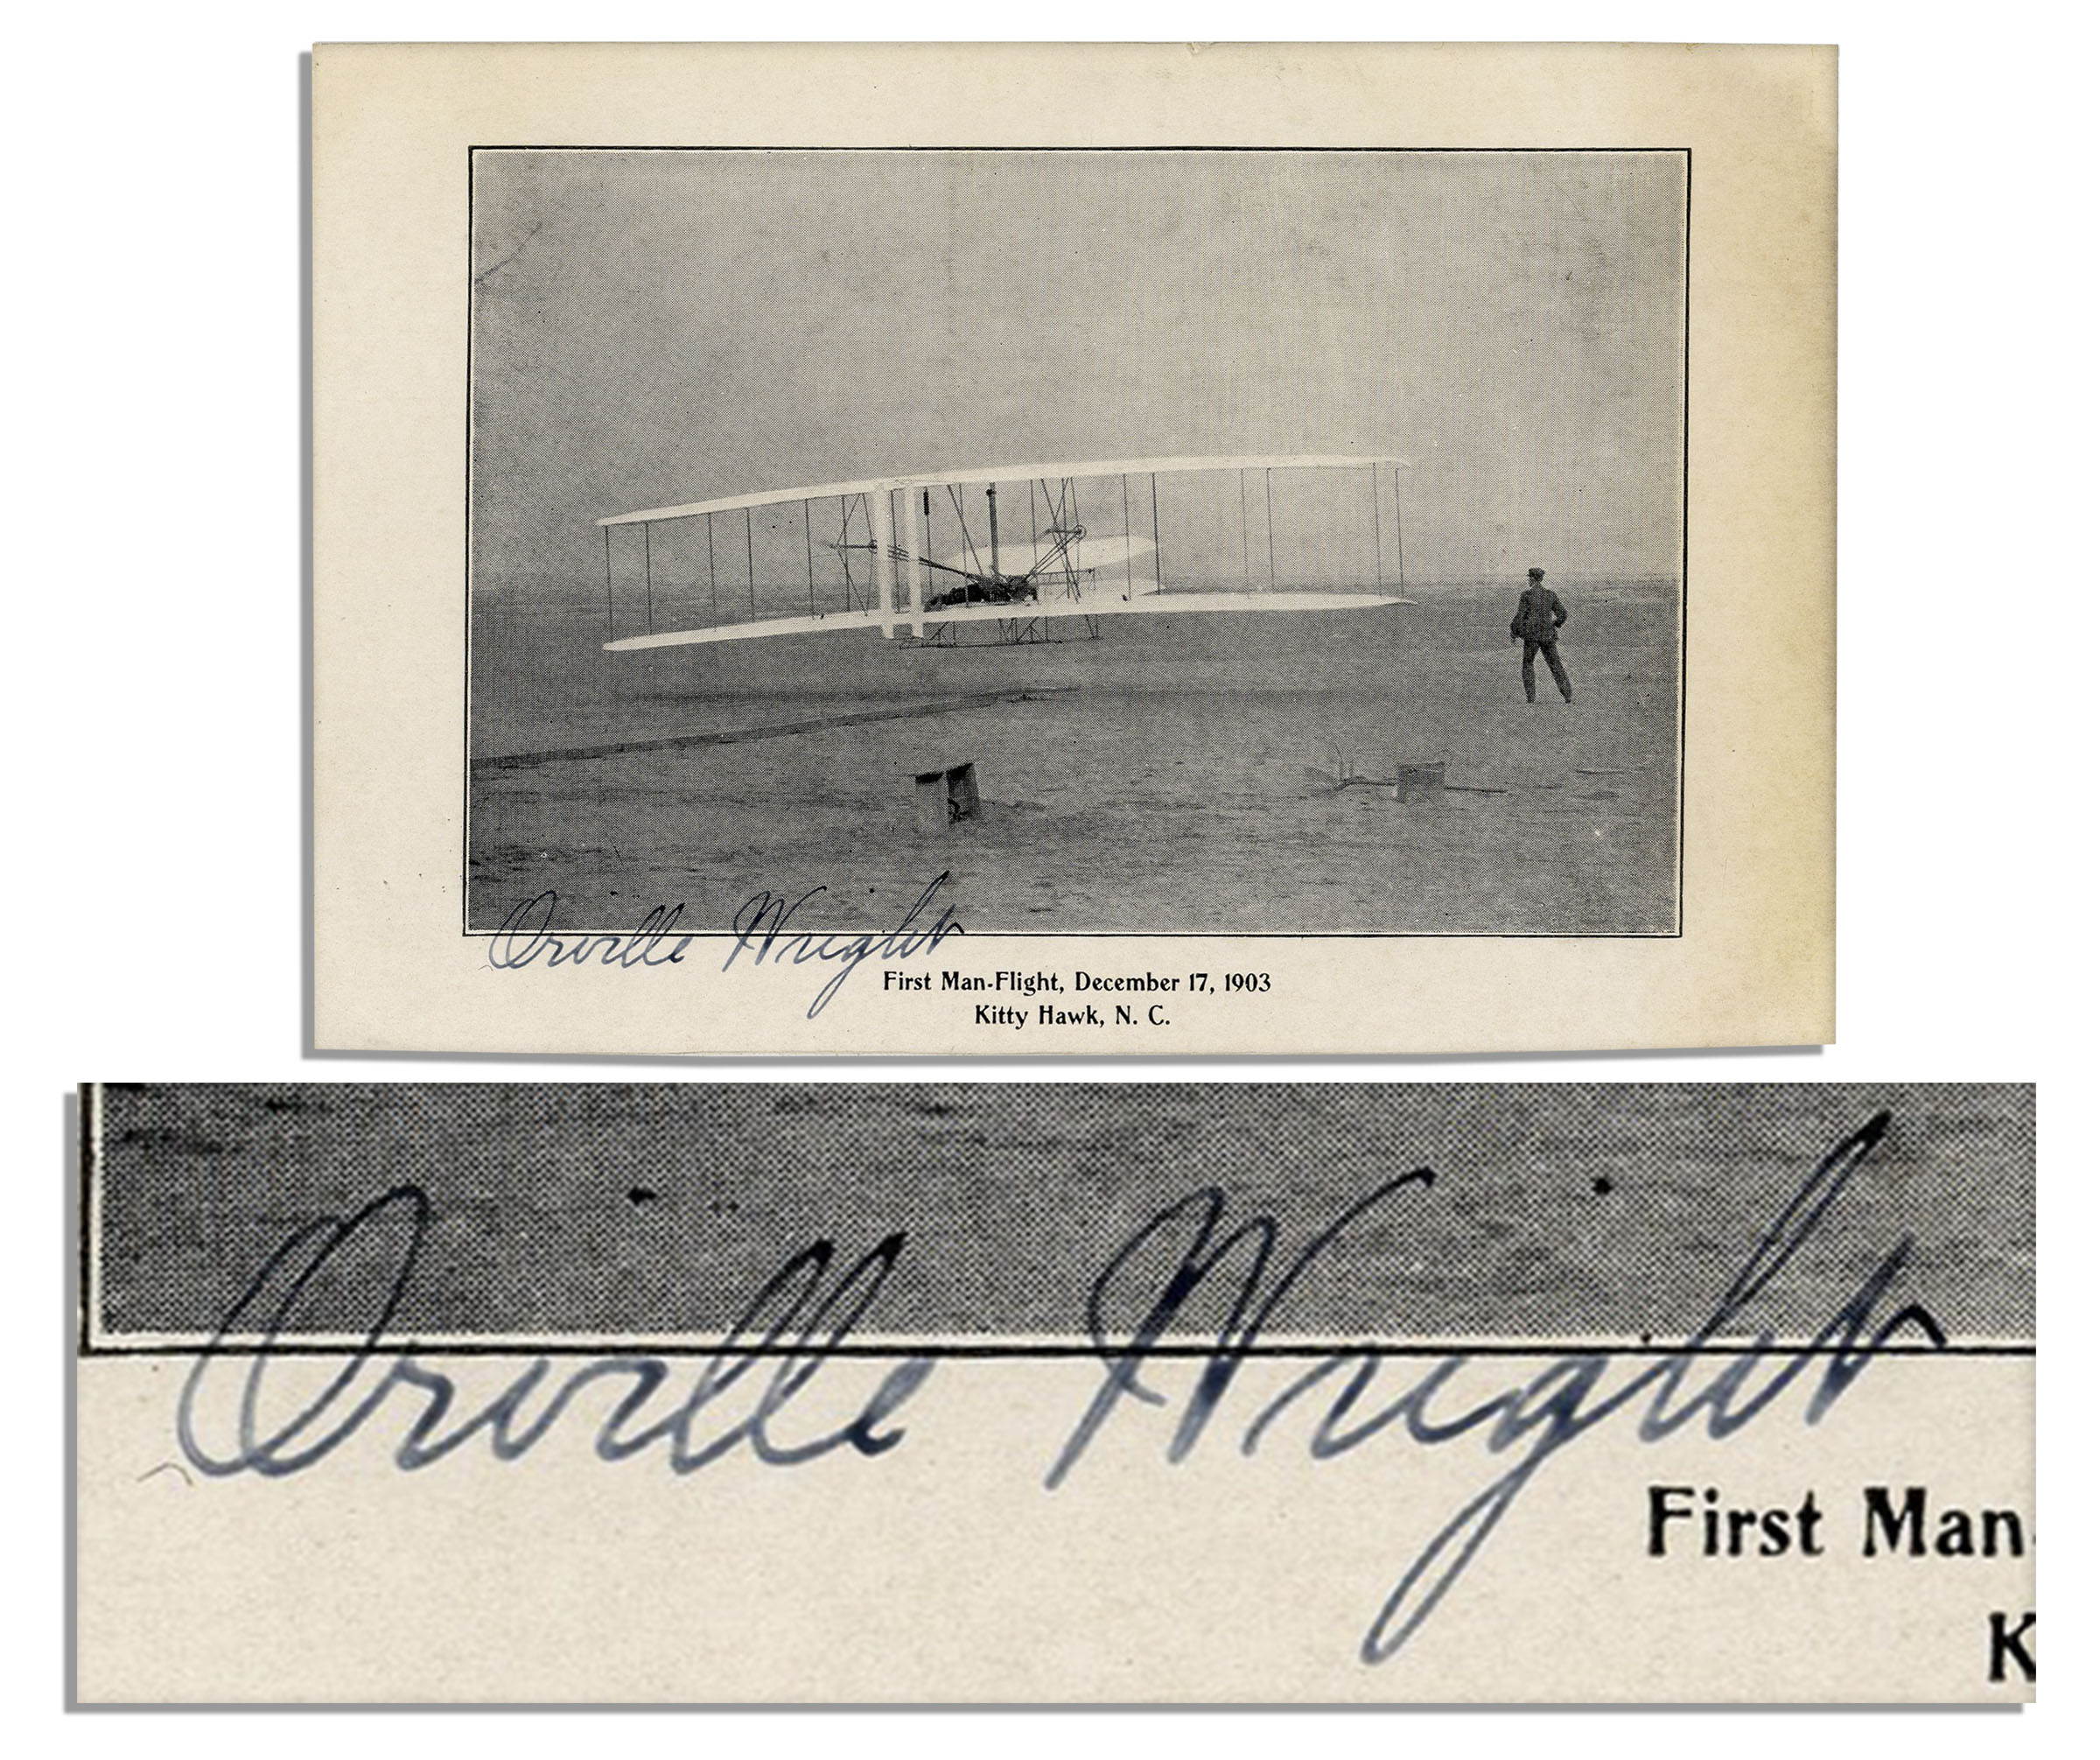 First Flight Kitty Hawk 1903 within lot detail - orville wright signed photo of the wright brothers